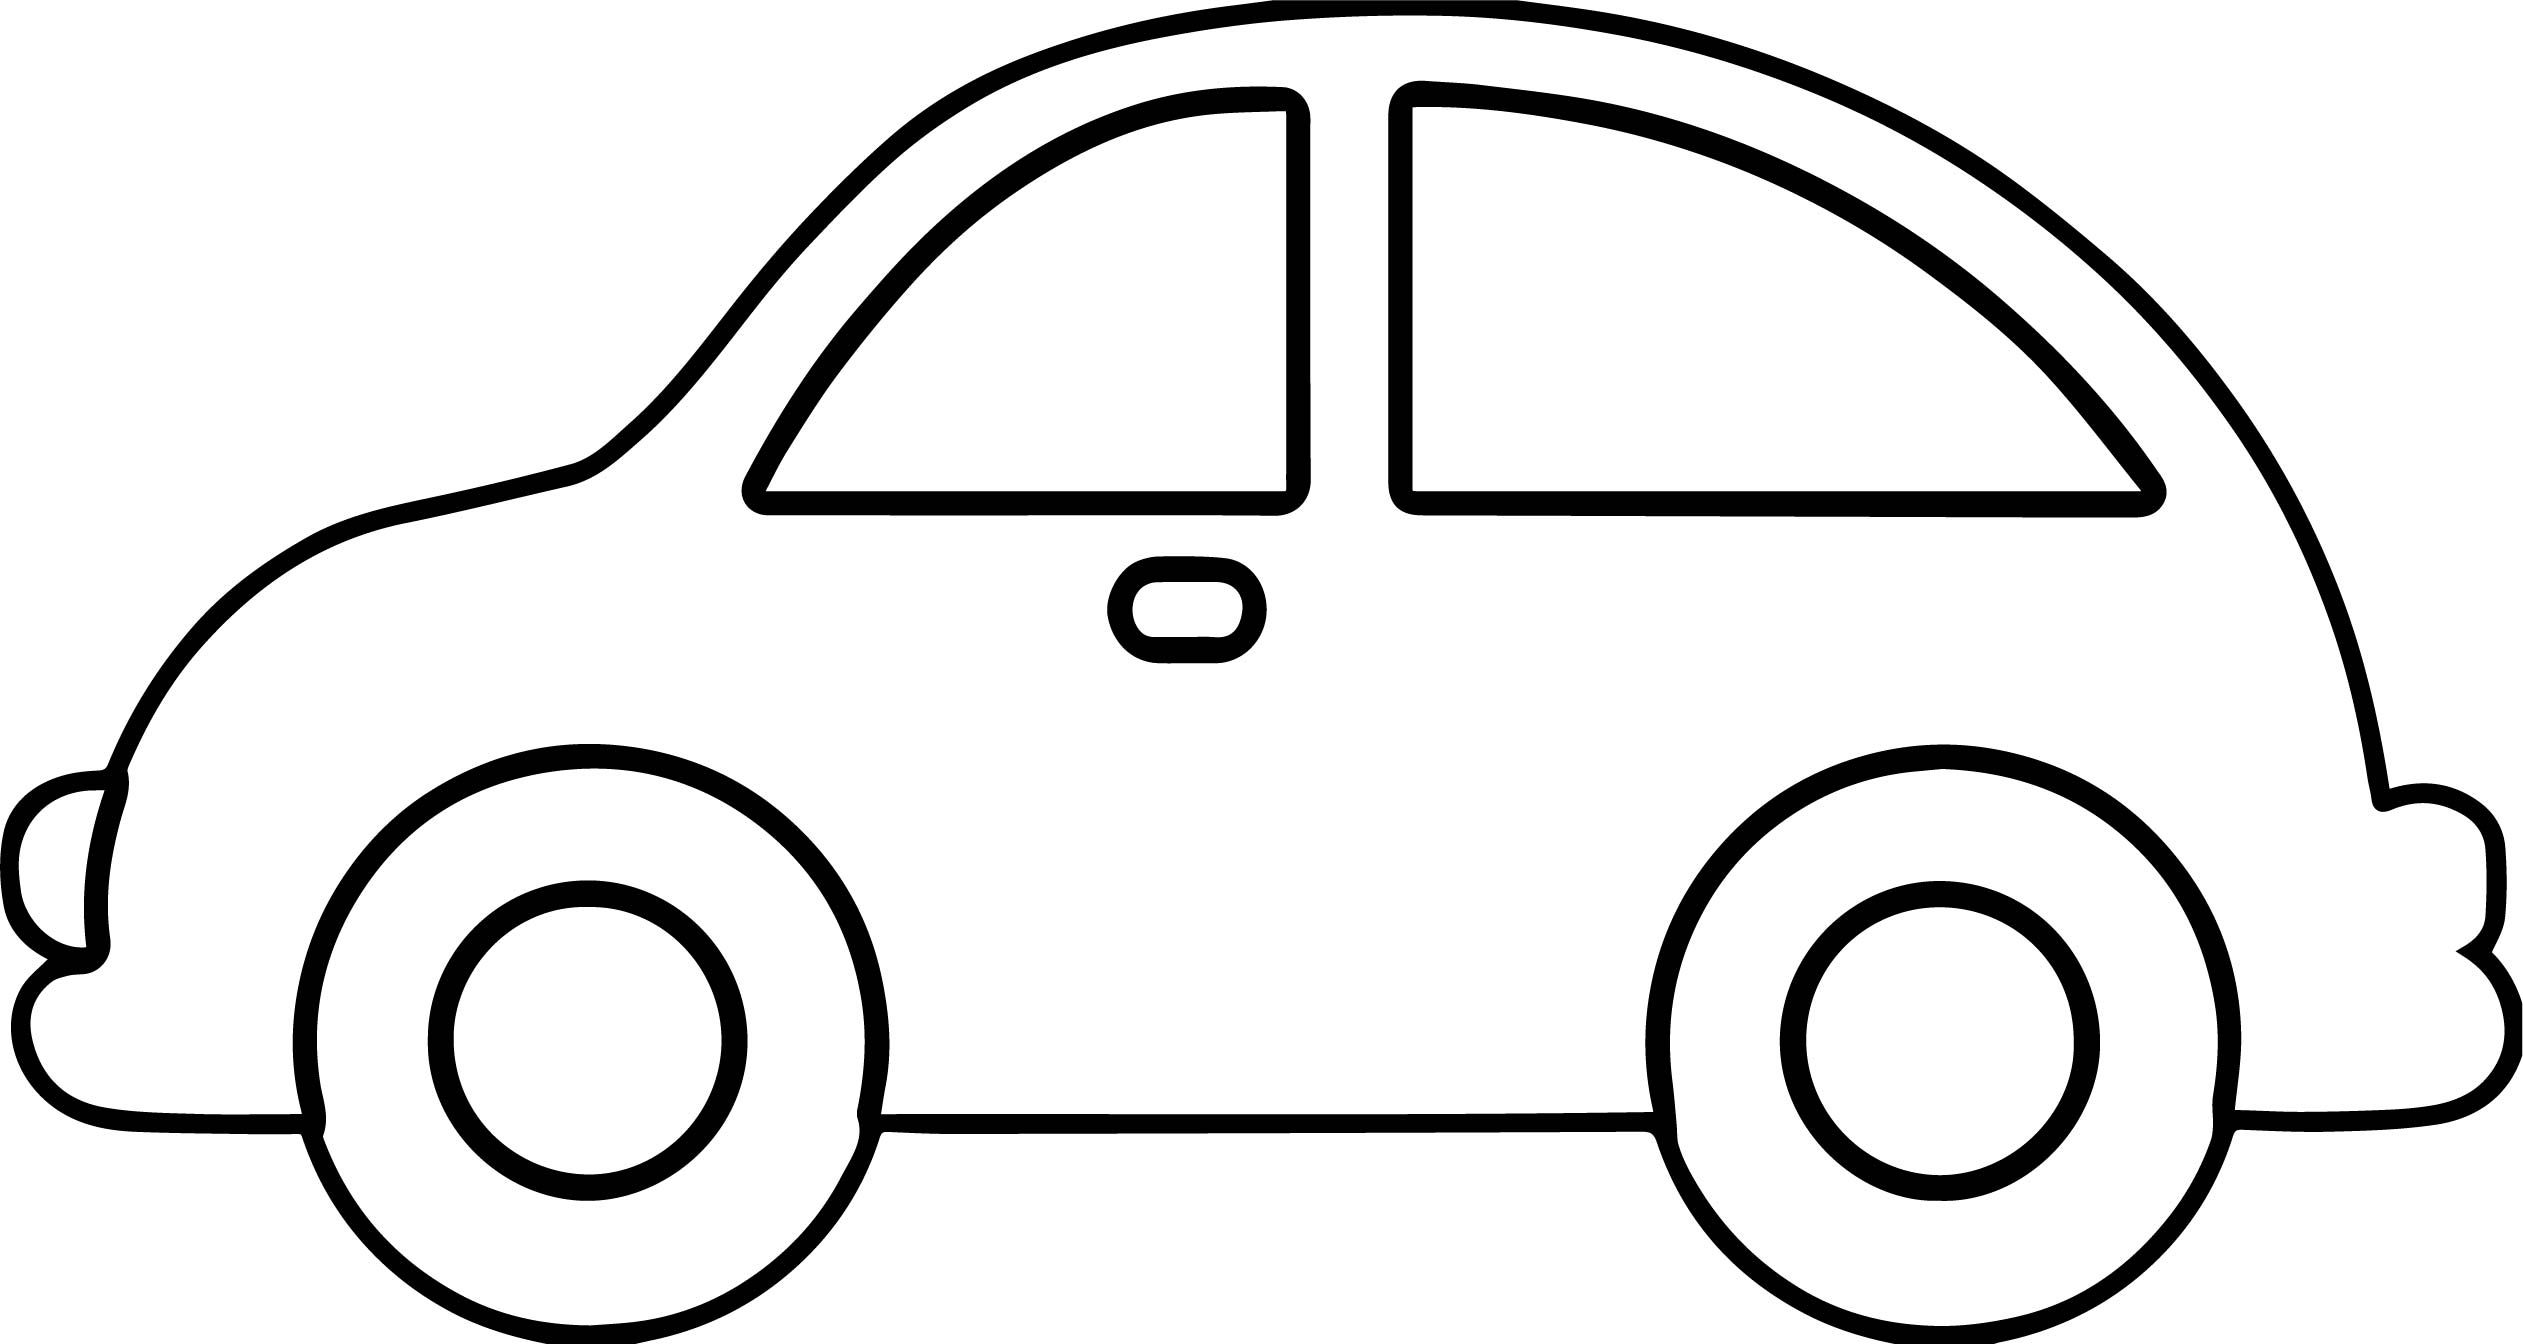 Black and White Cartoon Car | Car Outline | Free download best Car ...